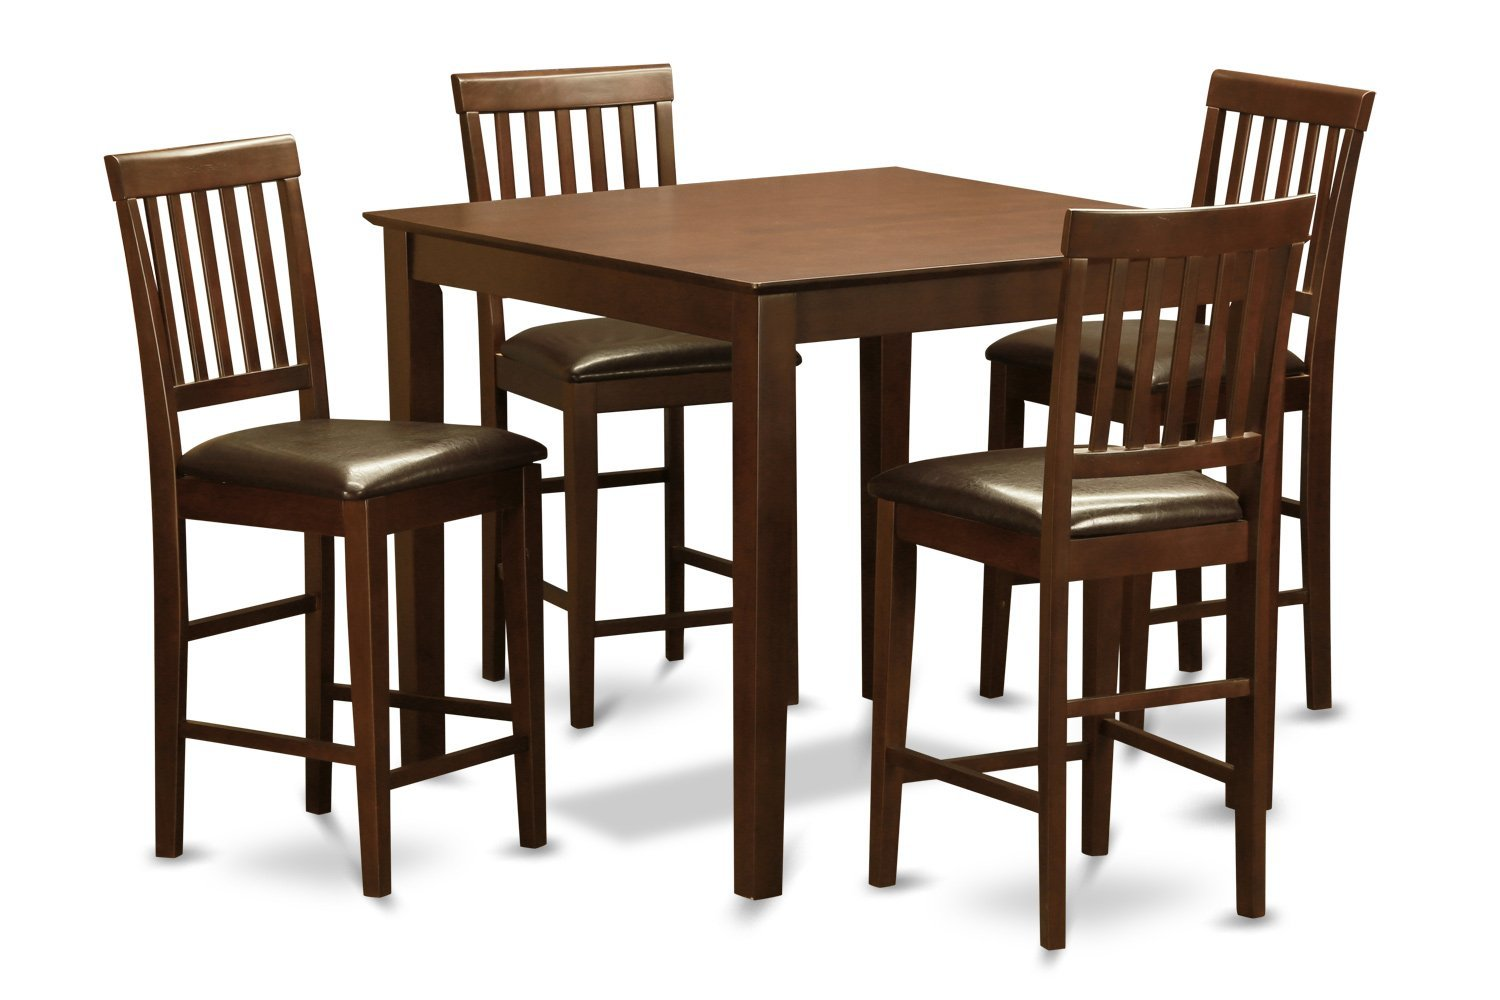 East West Furniture EWVN5-MAH-LC 5-Piece Gathering Table Set